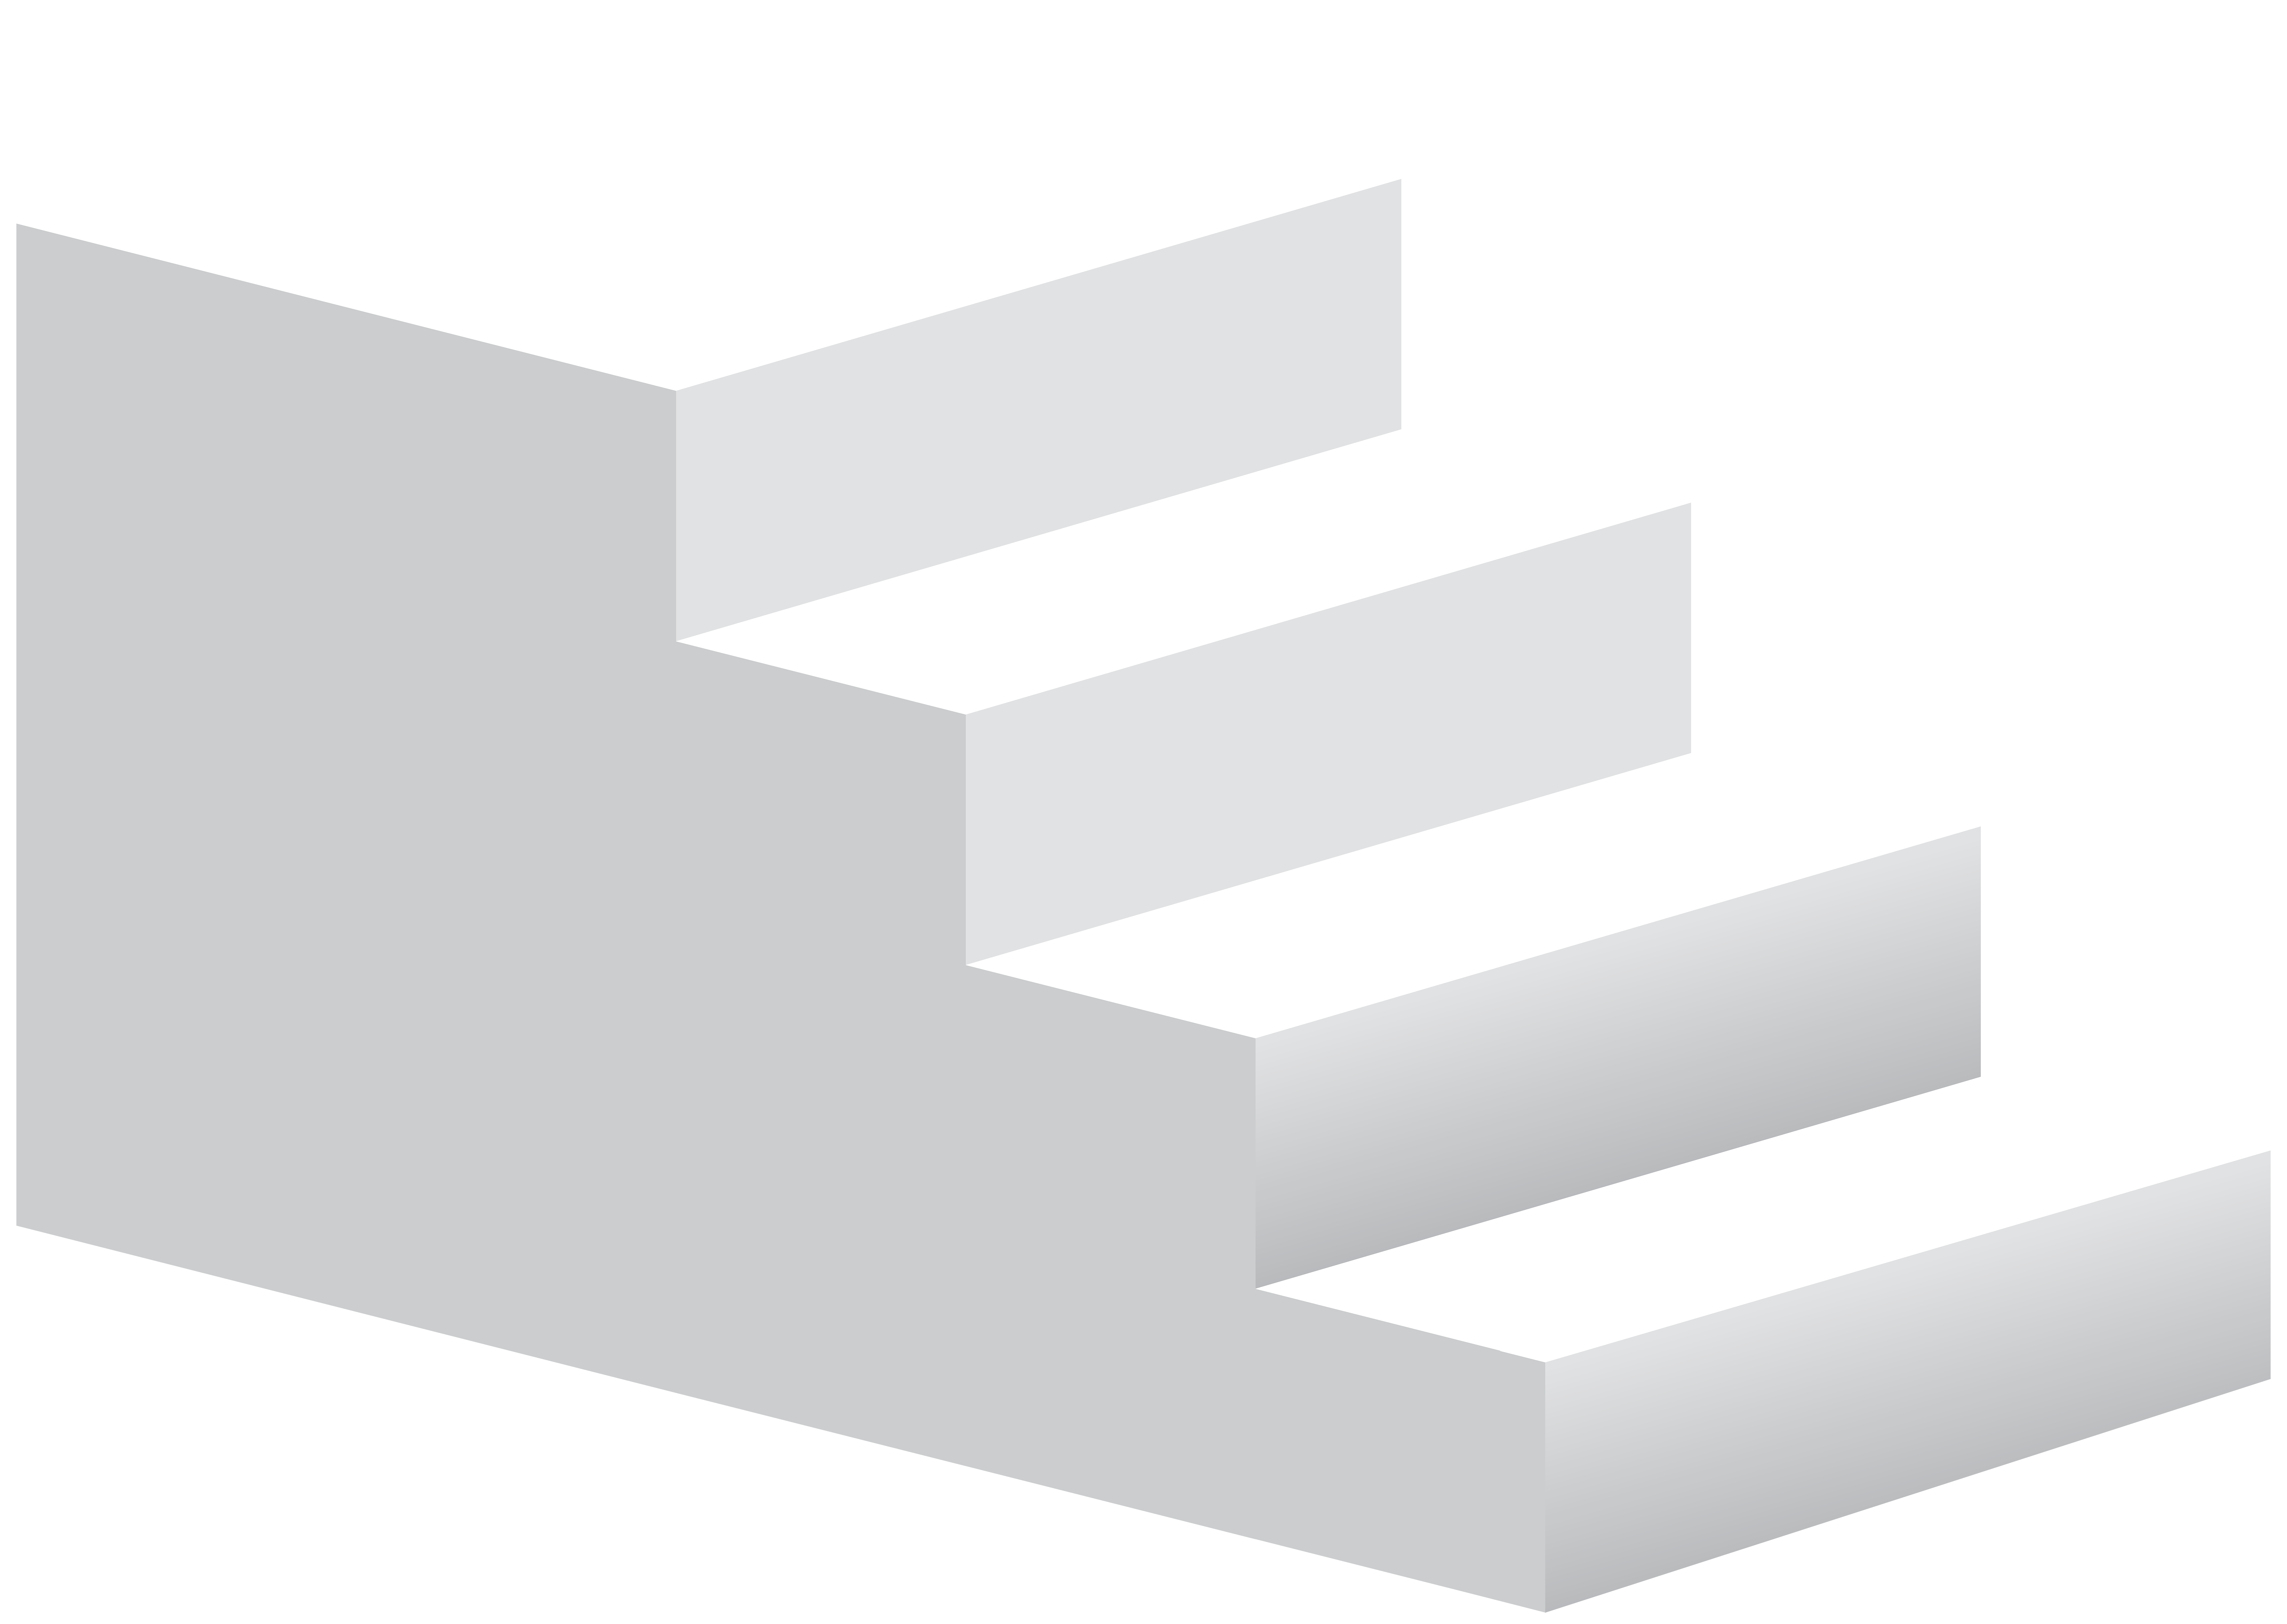 Stairs transparent. White png clip art